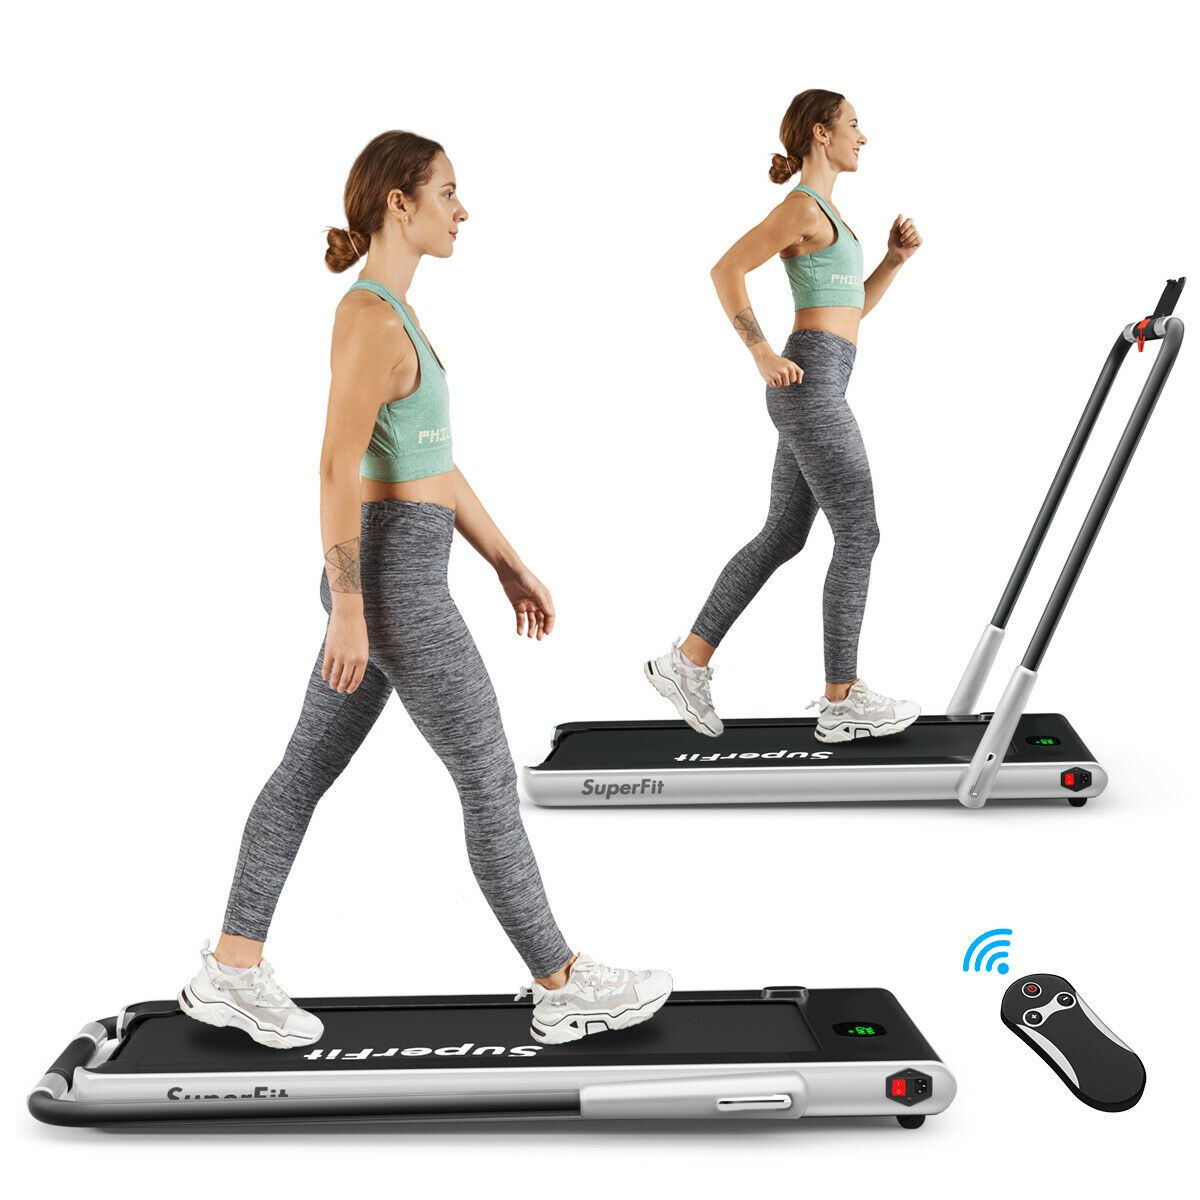 2 In 1 Folding Treadmill With Rc Bluetooth Speaker Led Display Foldable Treadmill Folding Treadmill Electric Treadmill